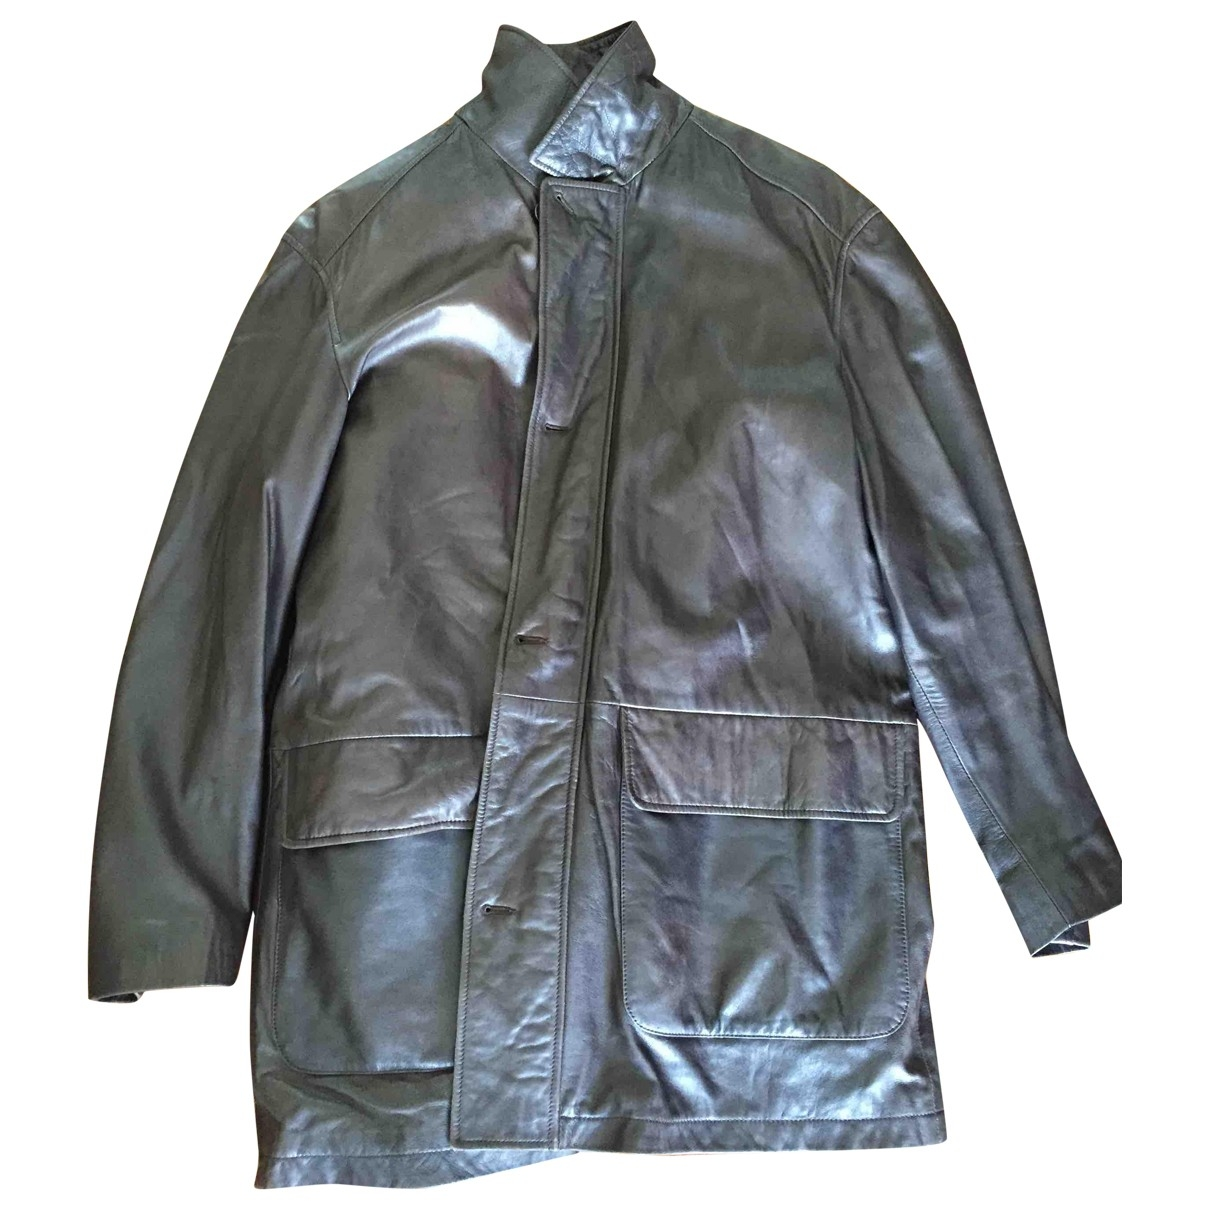 Faconnable \N Brown Leather jacket  for Men XL International